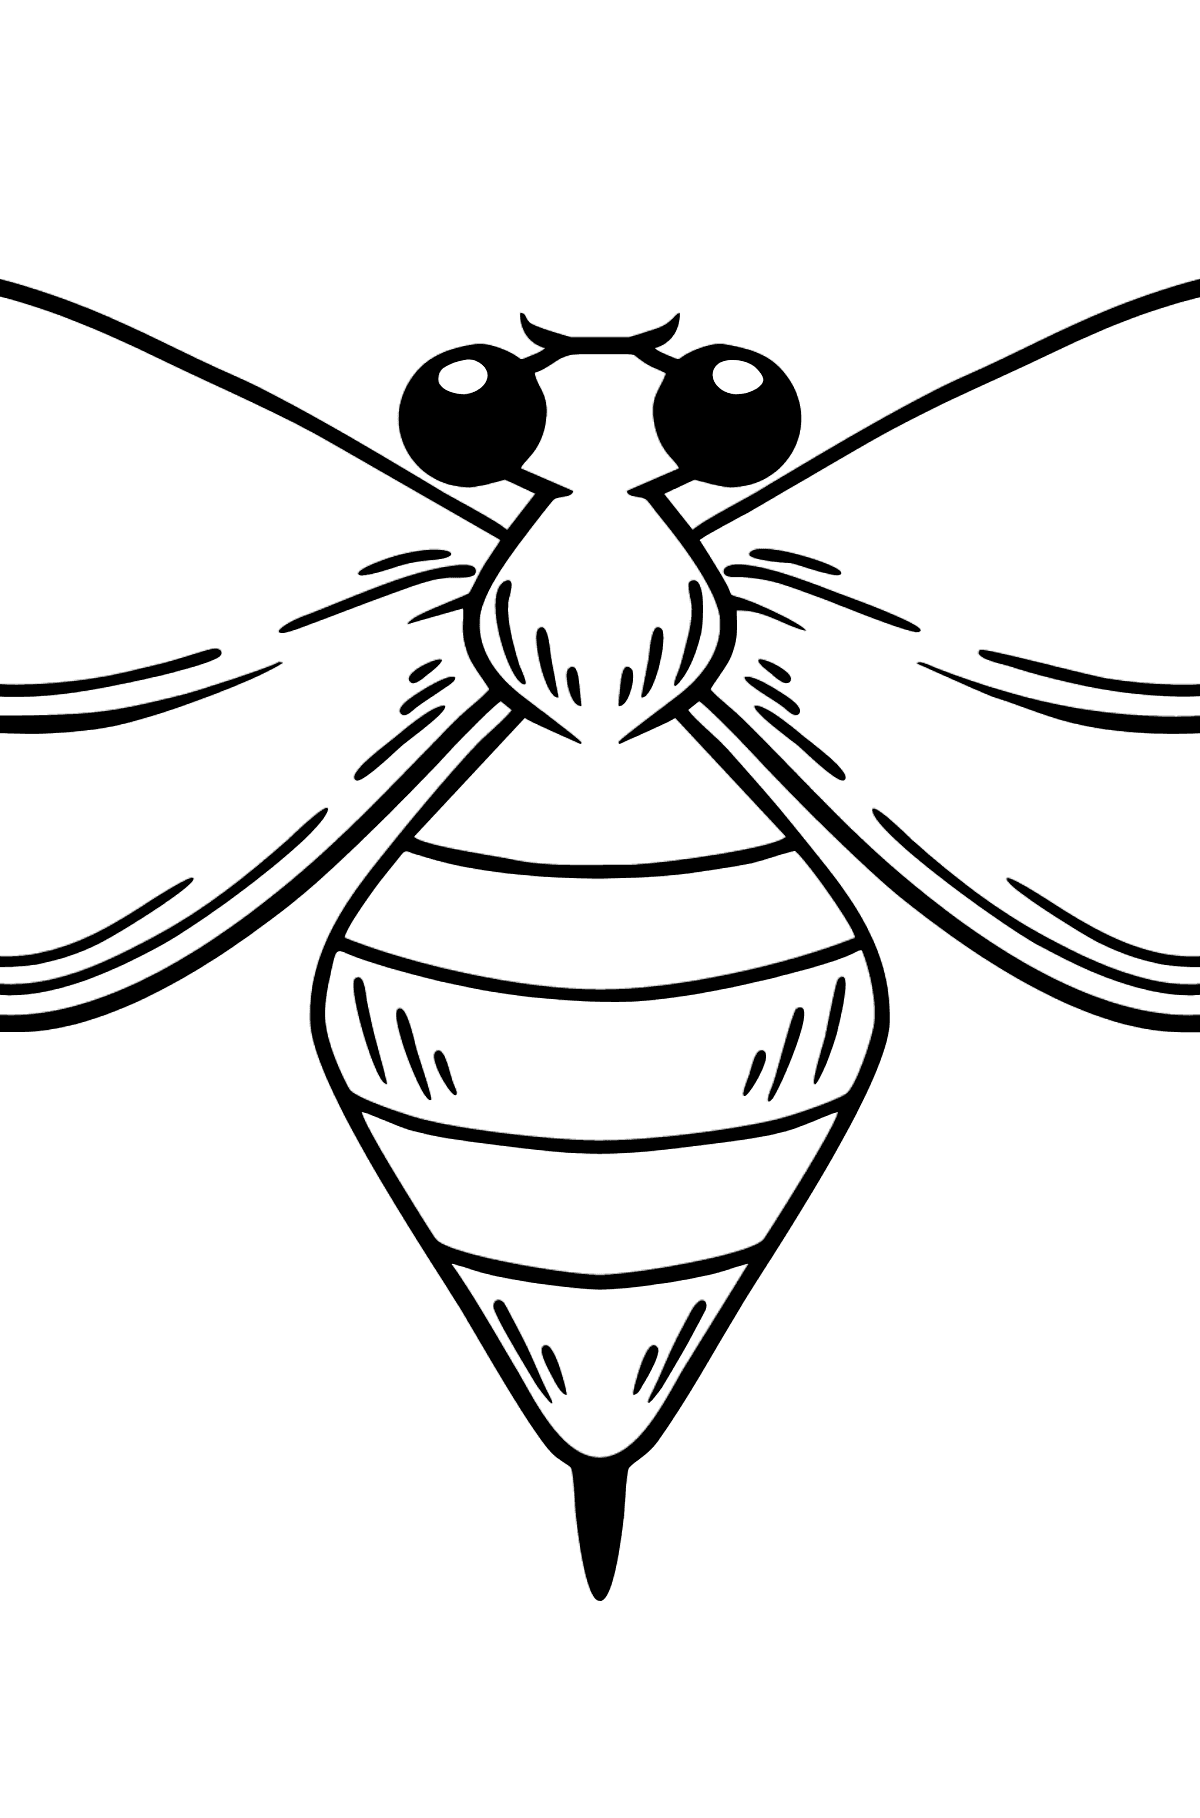 Wasp coloring page - Coloring Pages for Kids